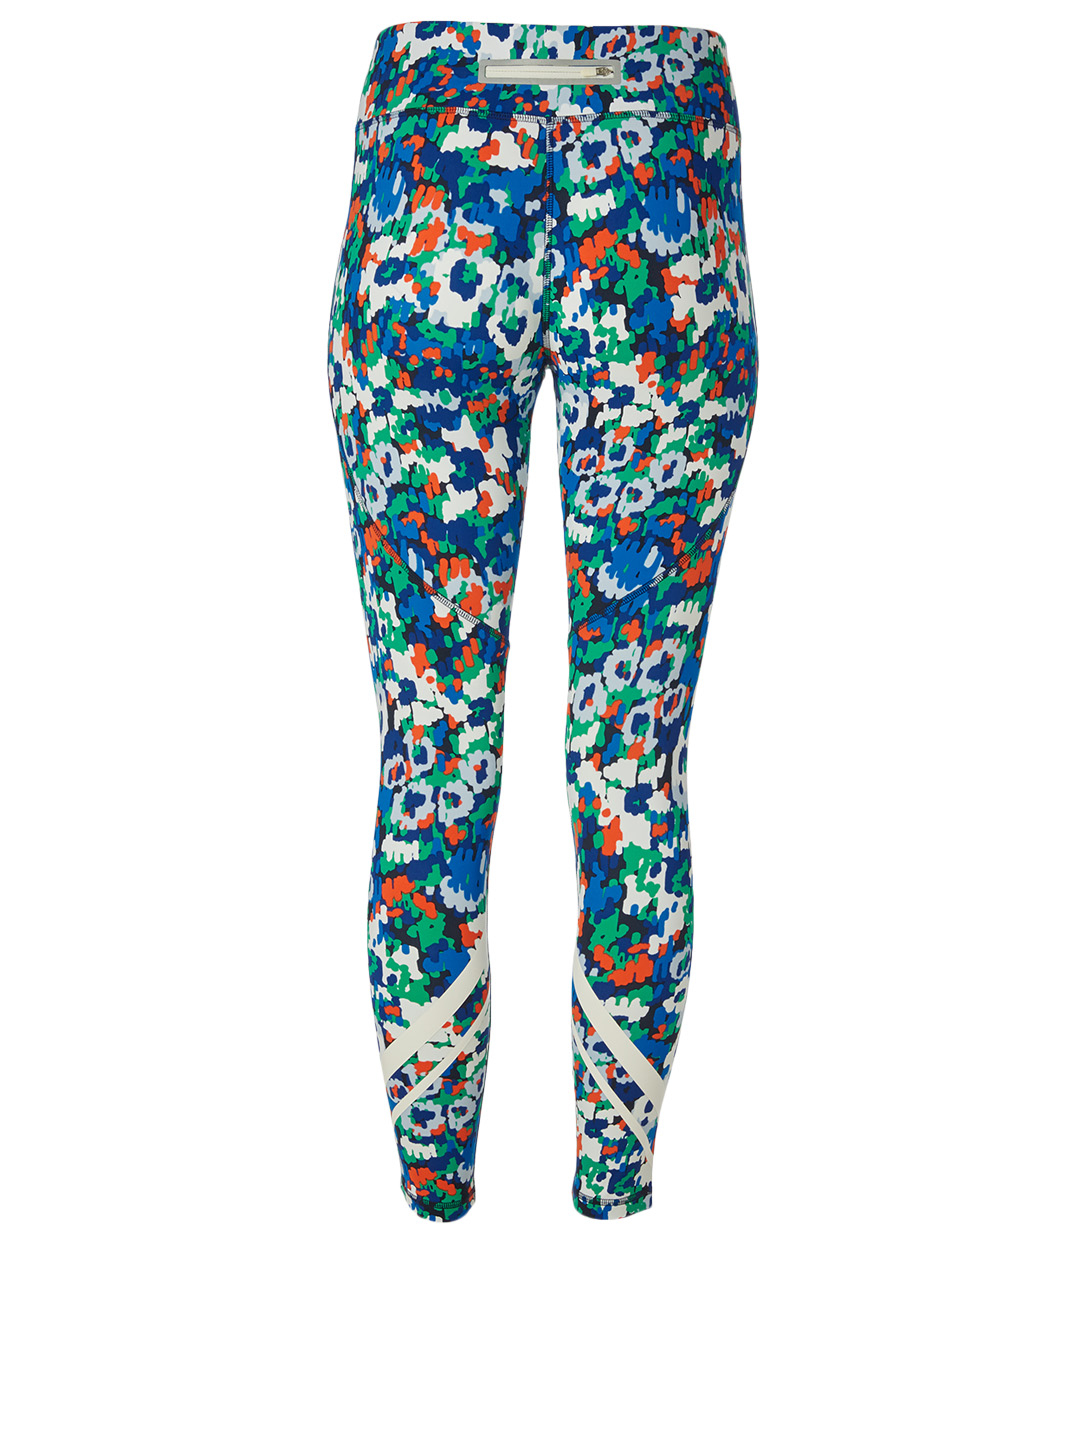 TORY SPORT Chevron Mid-Rise Leggings In Primary Floral Print Women's Multi